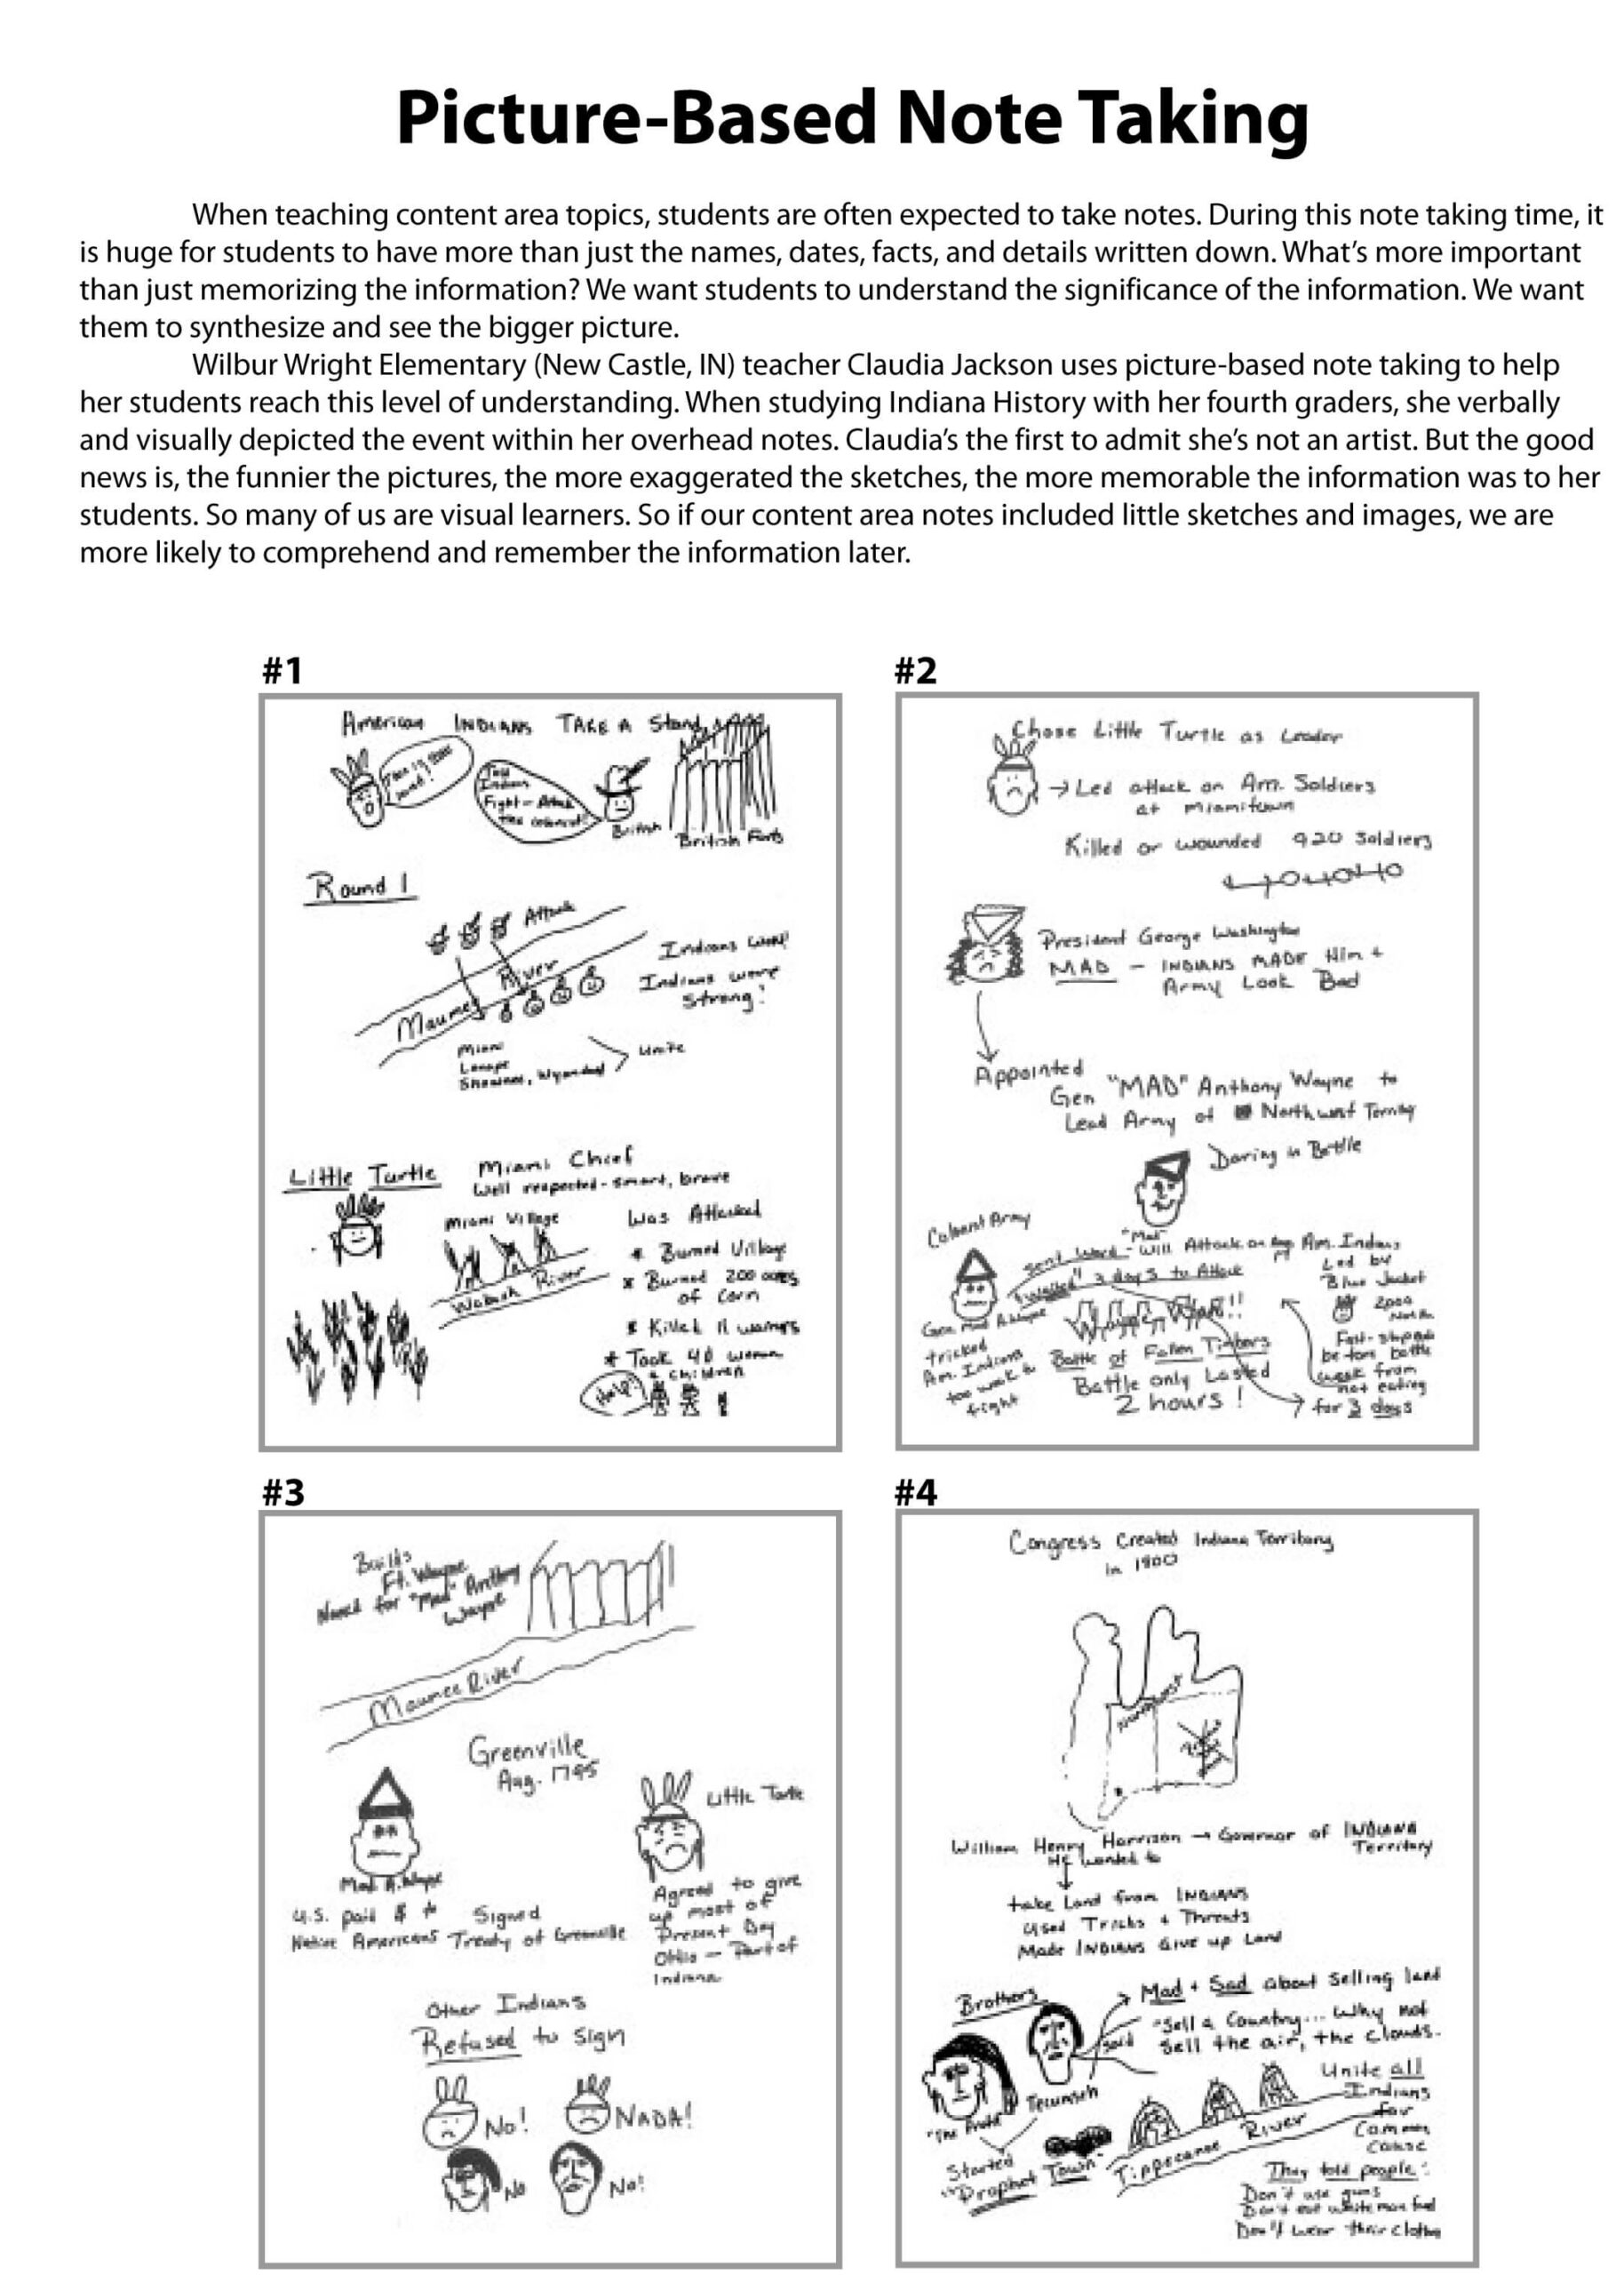 Picture-Based Note-Taking